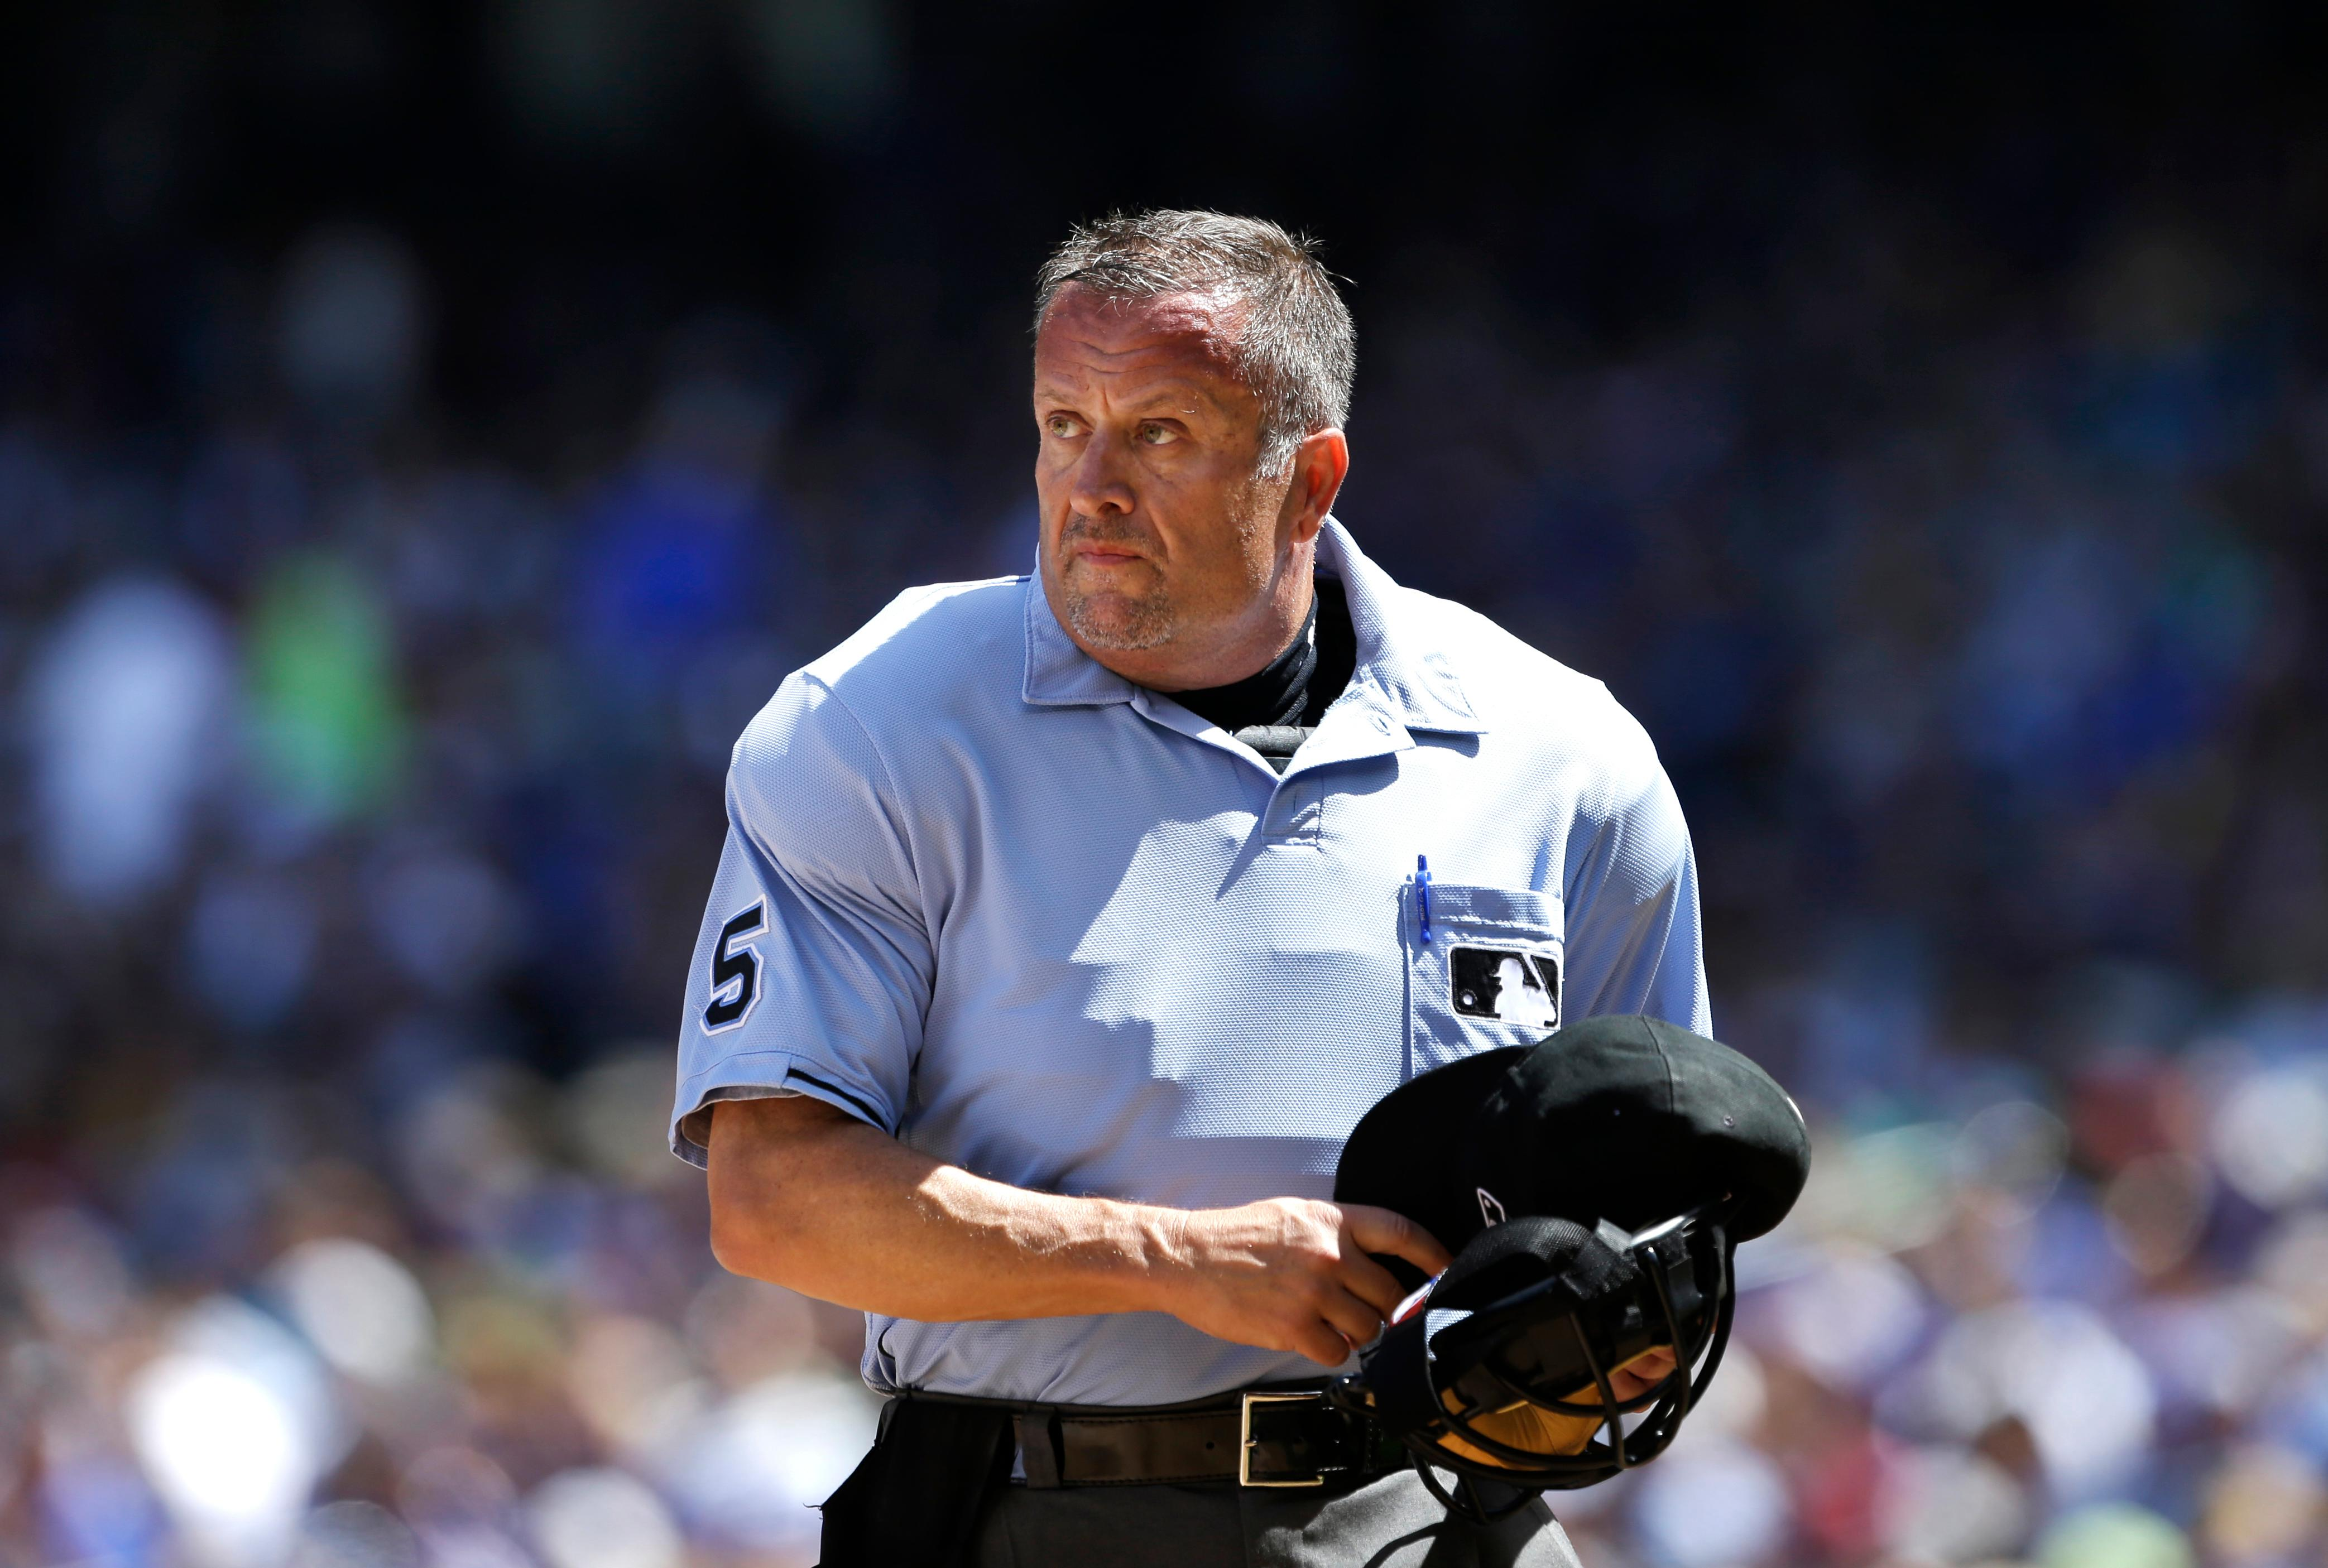 FILE - In this Aug. 7, 2013, file photo, Major League Baseball umpire Dale Scott prepares to return to action after being injured in the second inning of a baseball game between the Mariners and Toronto Blue Jays in Seattle. Rather than risk yet another concussion, Scott has decided to retire at 58. The veteran crew chief missed nearly the entire 2017 season after a foul ball off the bat of Baltimore slugger Mark Trumbo in Toronto on April 14 caught him hard in the mask, causing Scott's second concussion in nine months and fourth in five years. (AP Photo/Elaine Thompson, File)